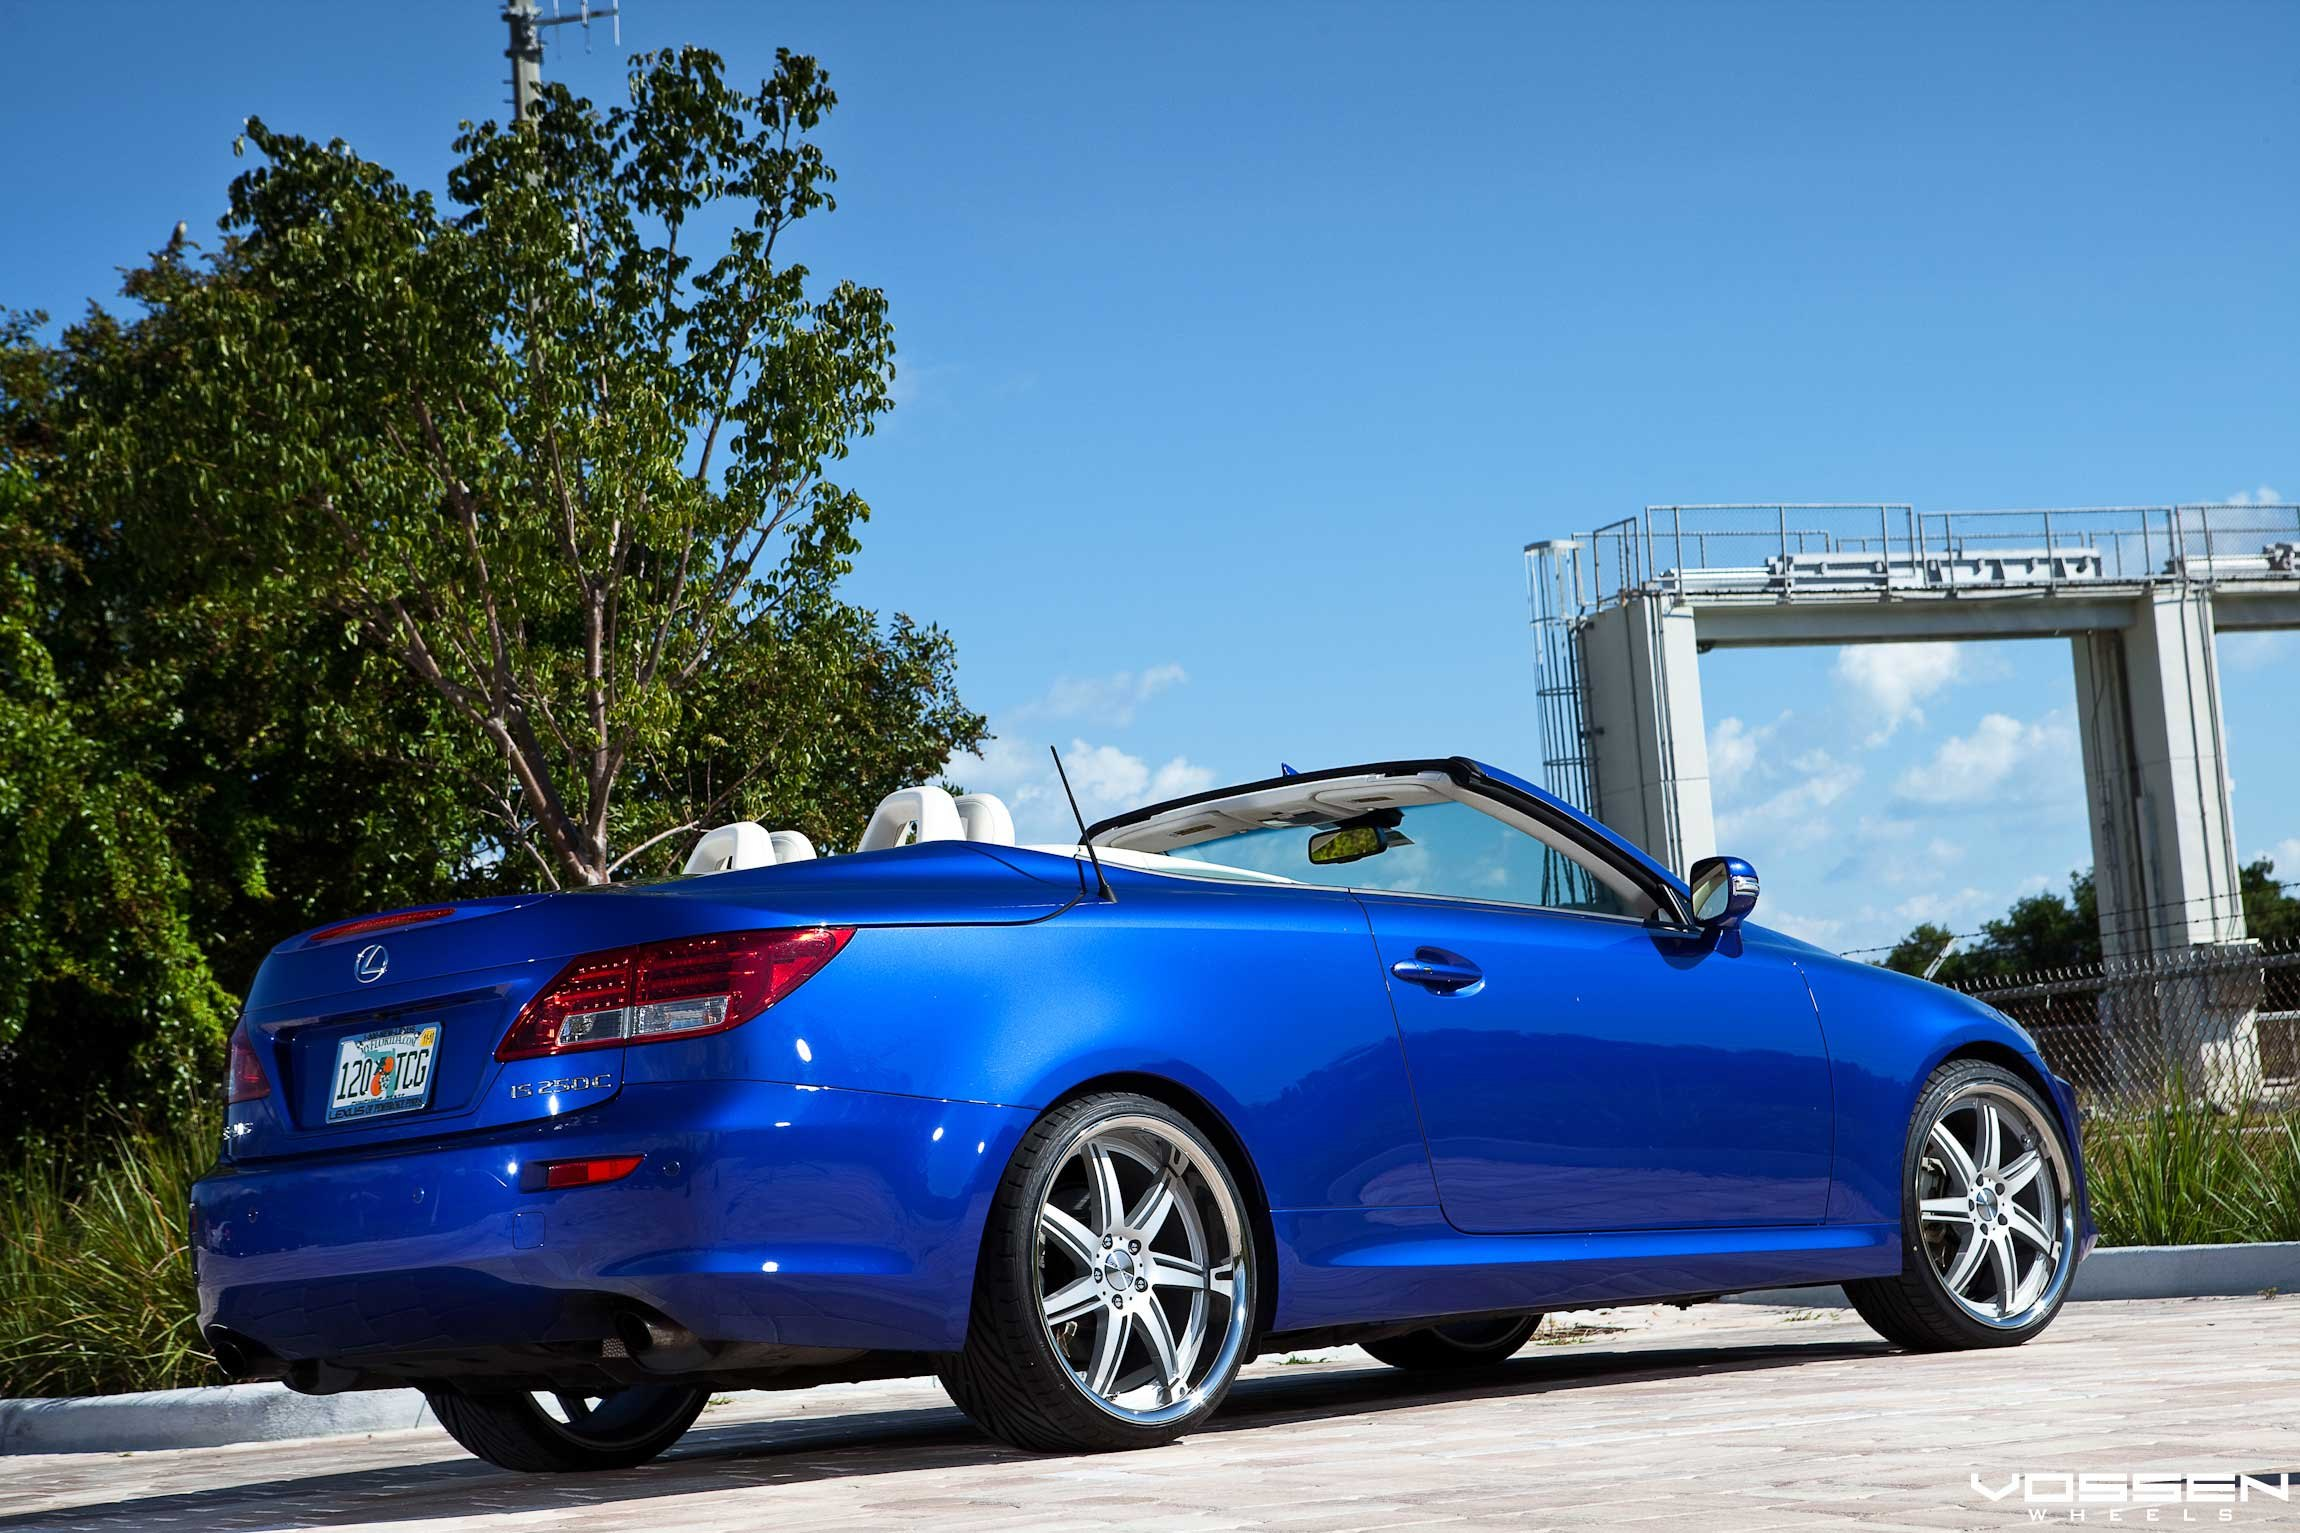 Sky Blue Lexus IS Convertible Looking Great on Vossen Custom